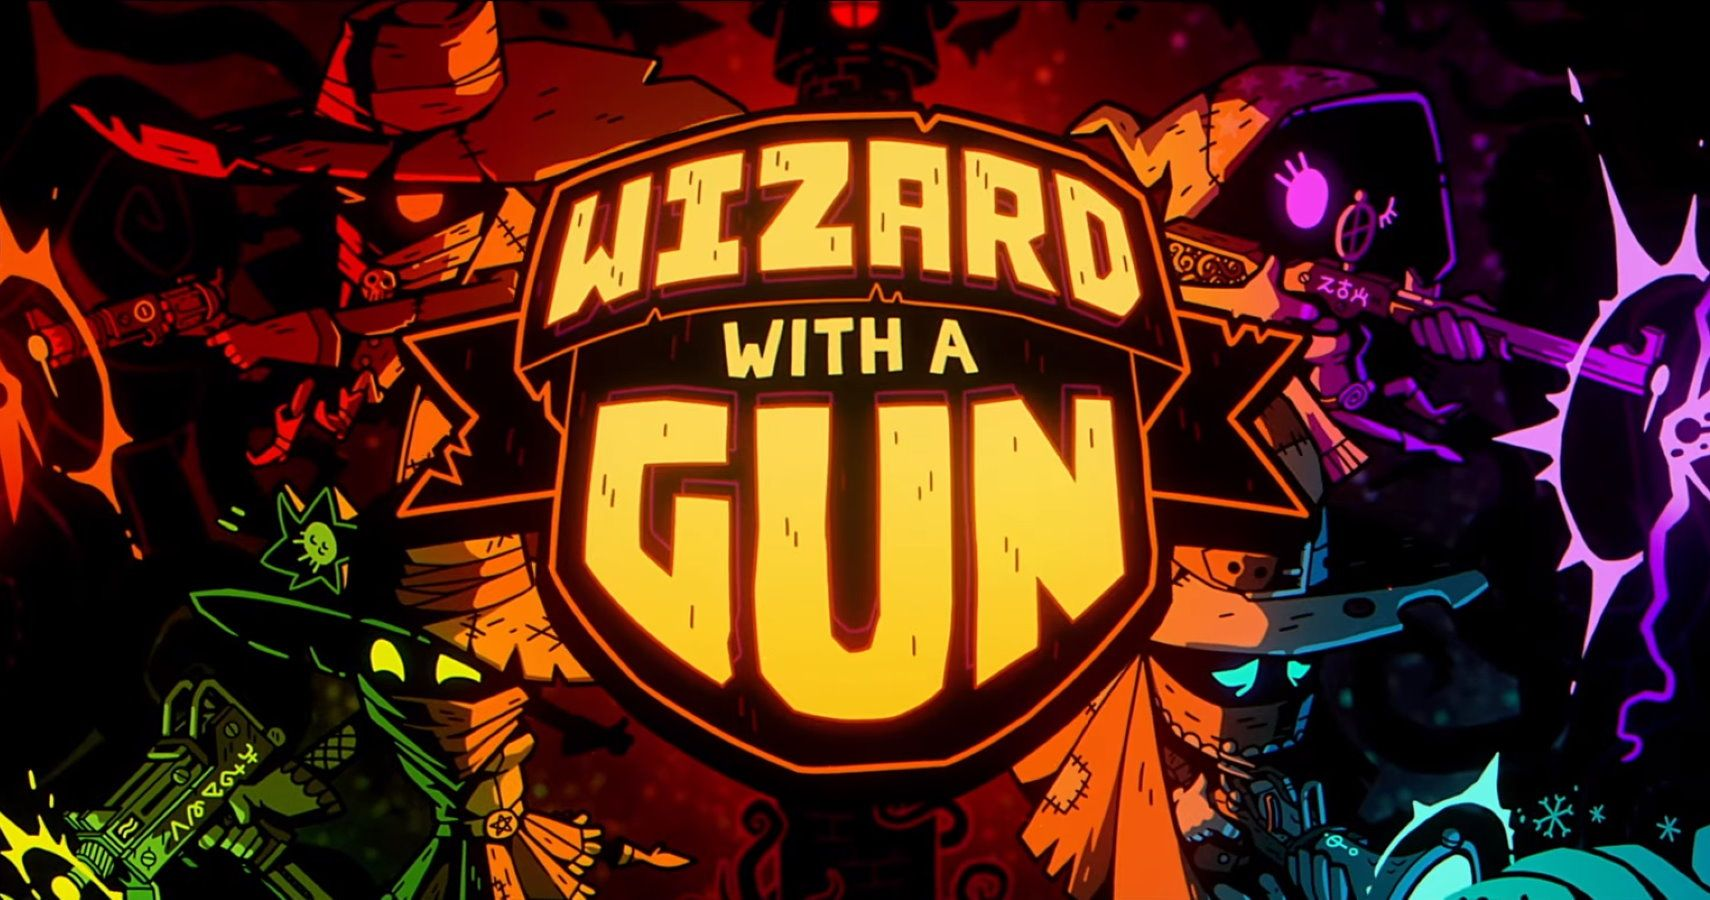 Wizard With A Gun Pretty Much Says It All With The Title